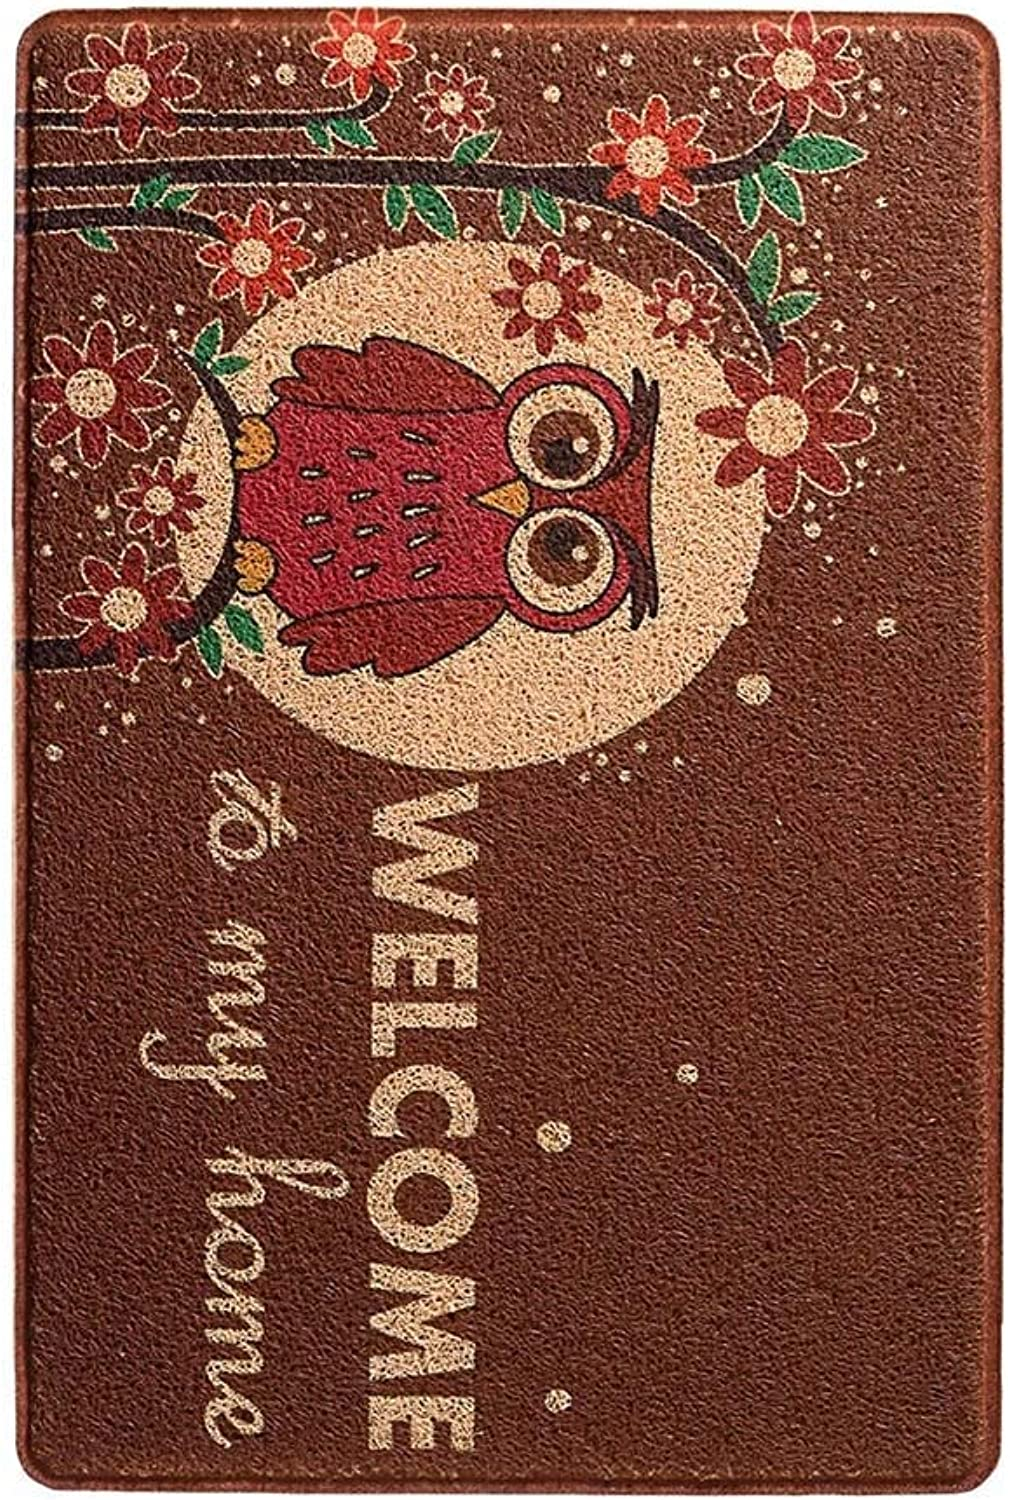 Door Mat Foyer Kitchen Floor Mat Carpet Home 45  75,60  90,60  120,80  120,120  180 (color   T, Size   80  120CM)